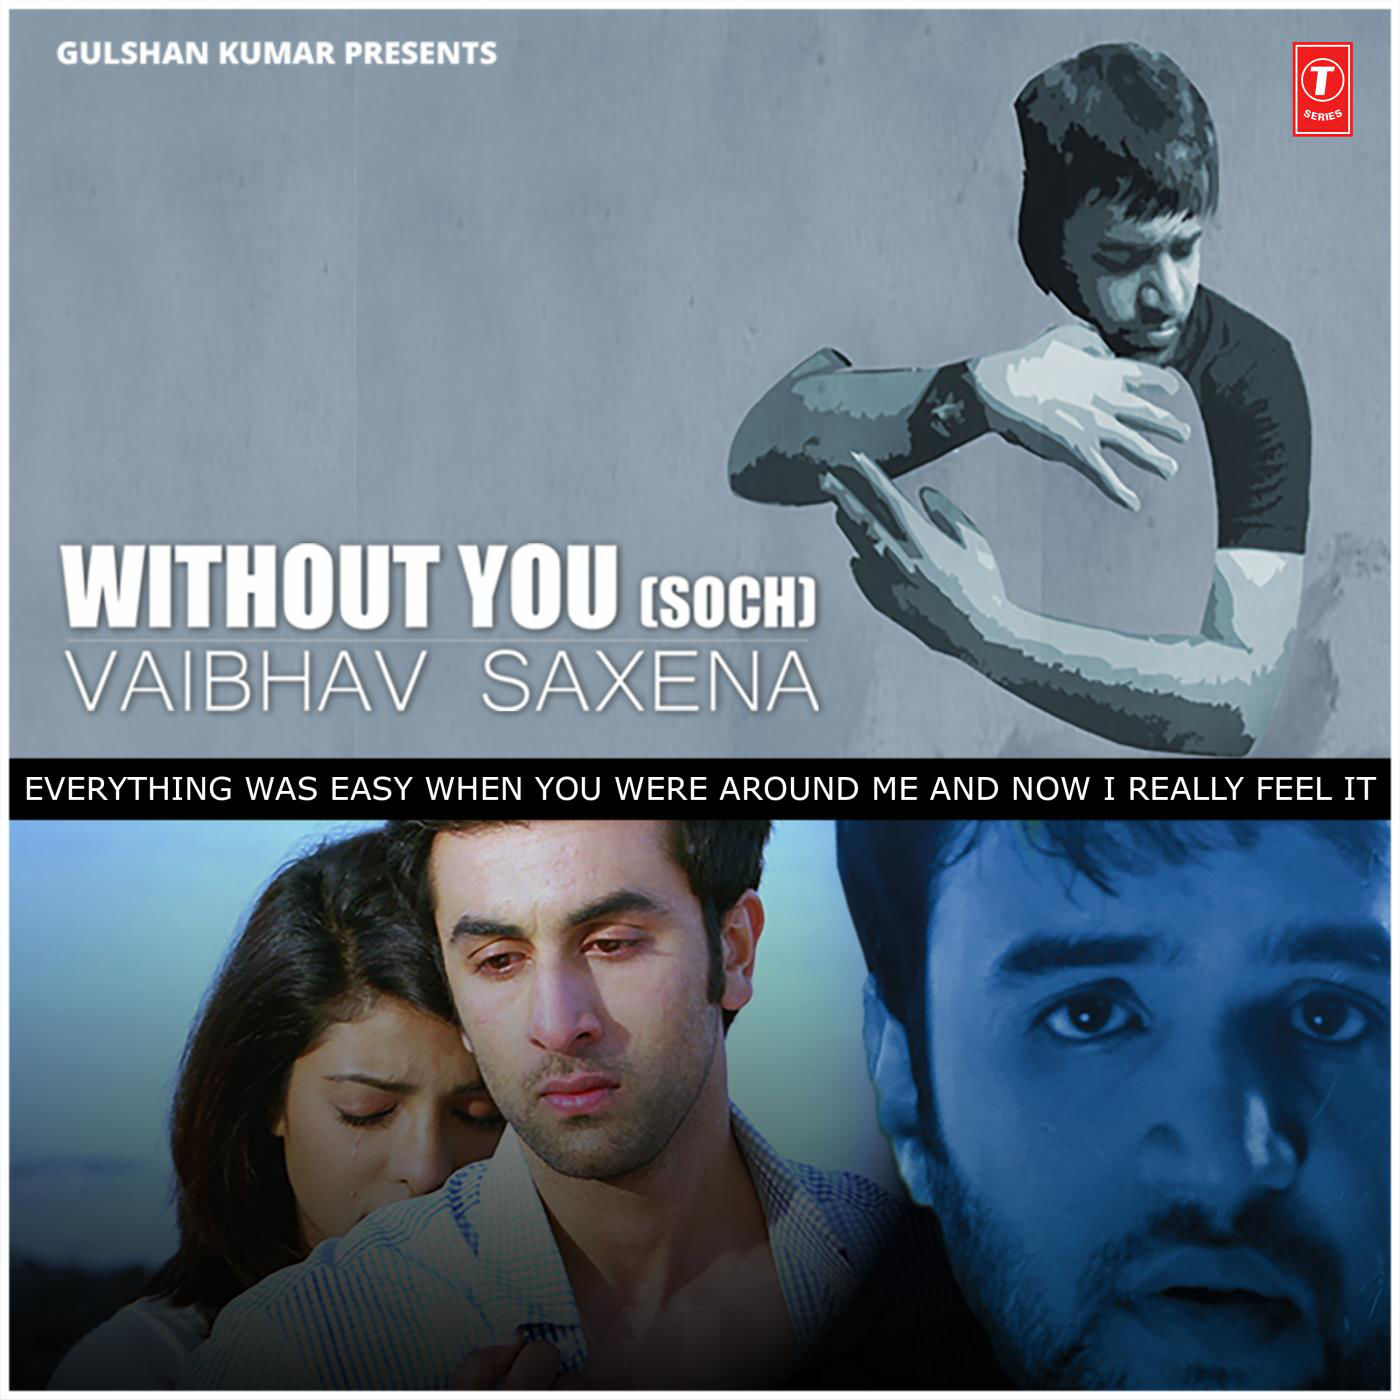 Without You (Soch)